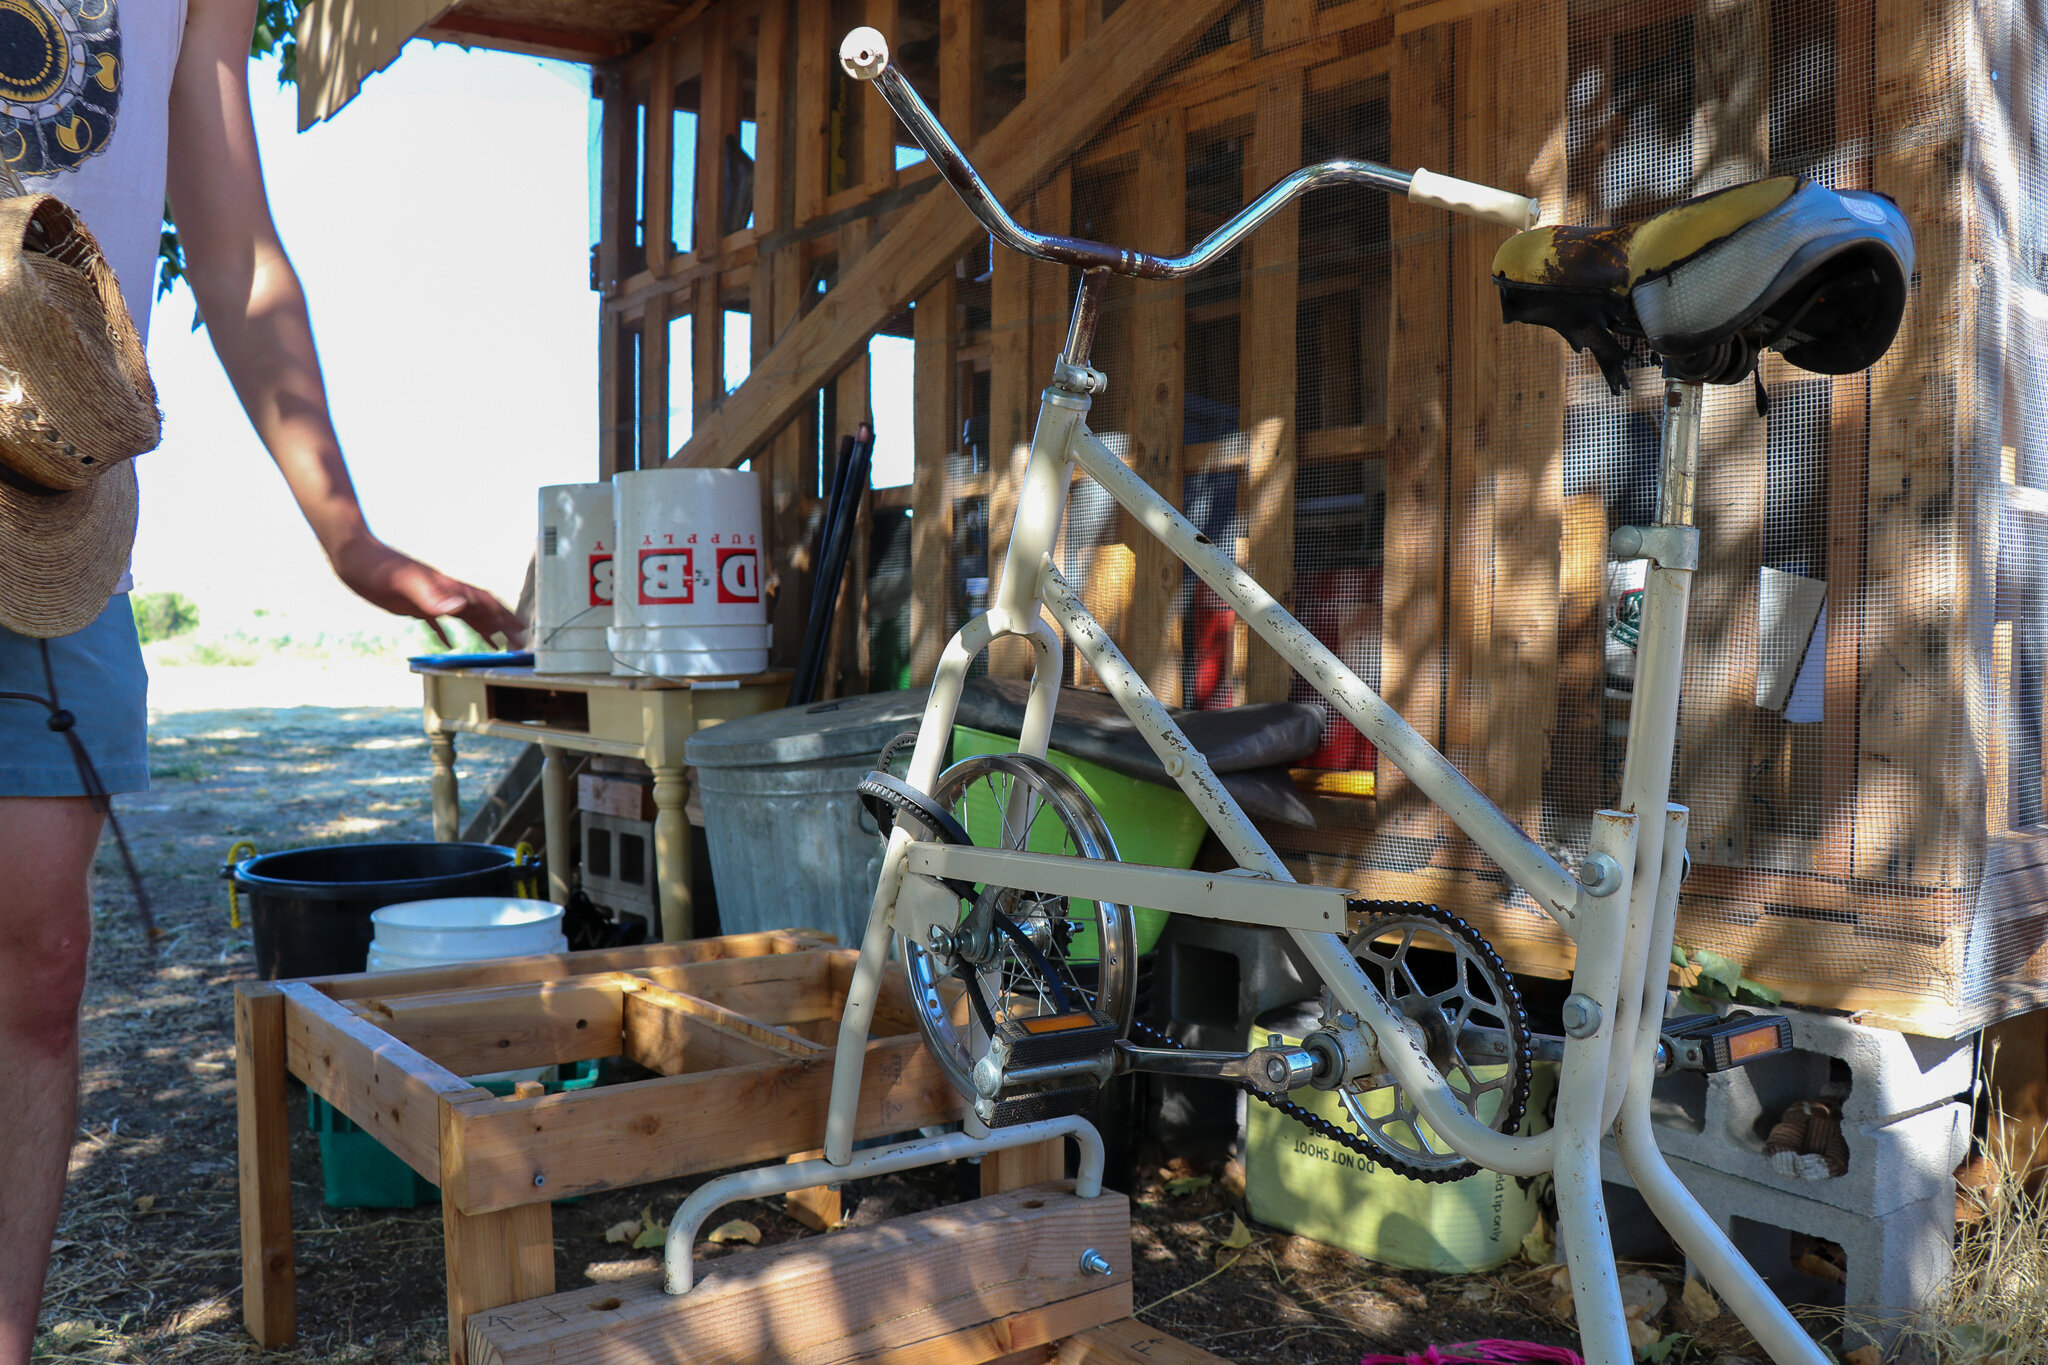 Henry rigged an old exercise bike to allow him to winnow the grains he produces. Doesn't get more #NetZero than that.